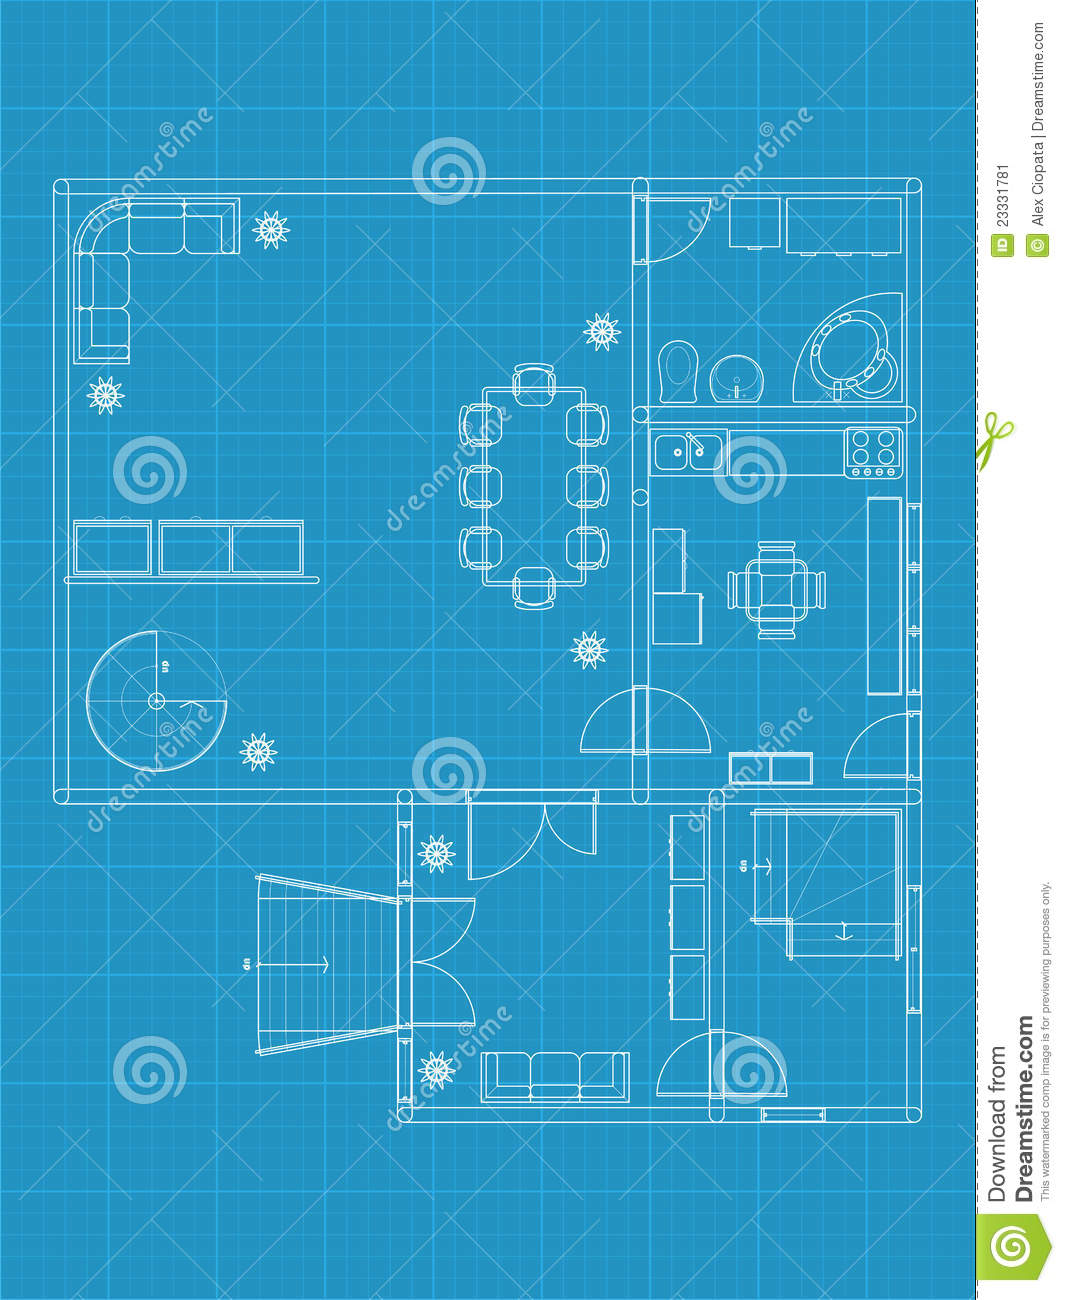 Building blueprints stock image image 23331781 for House blueprint images